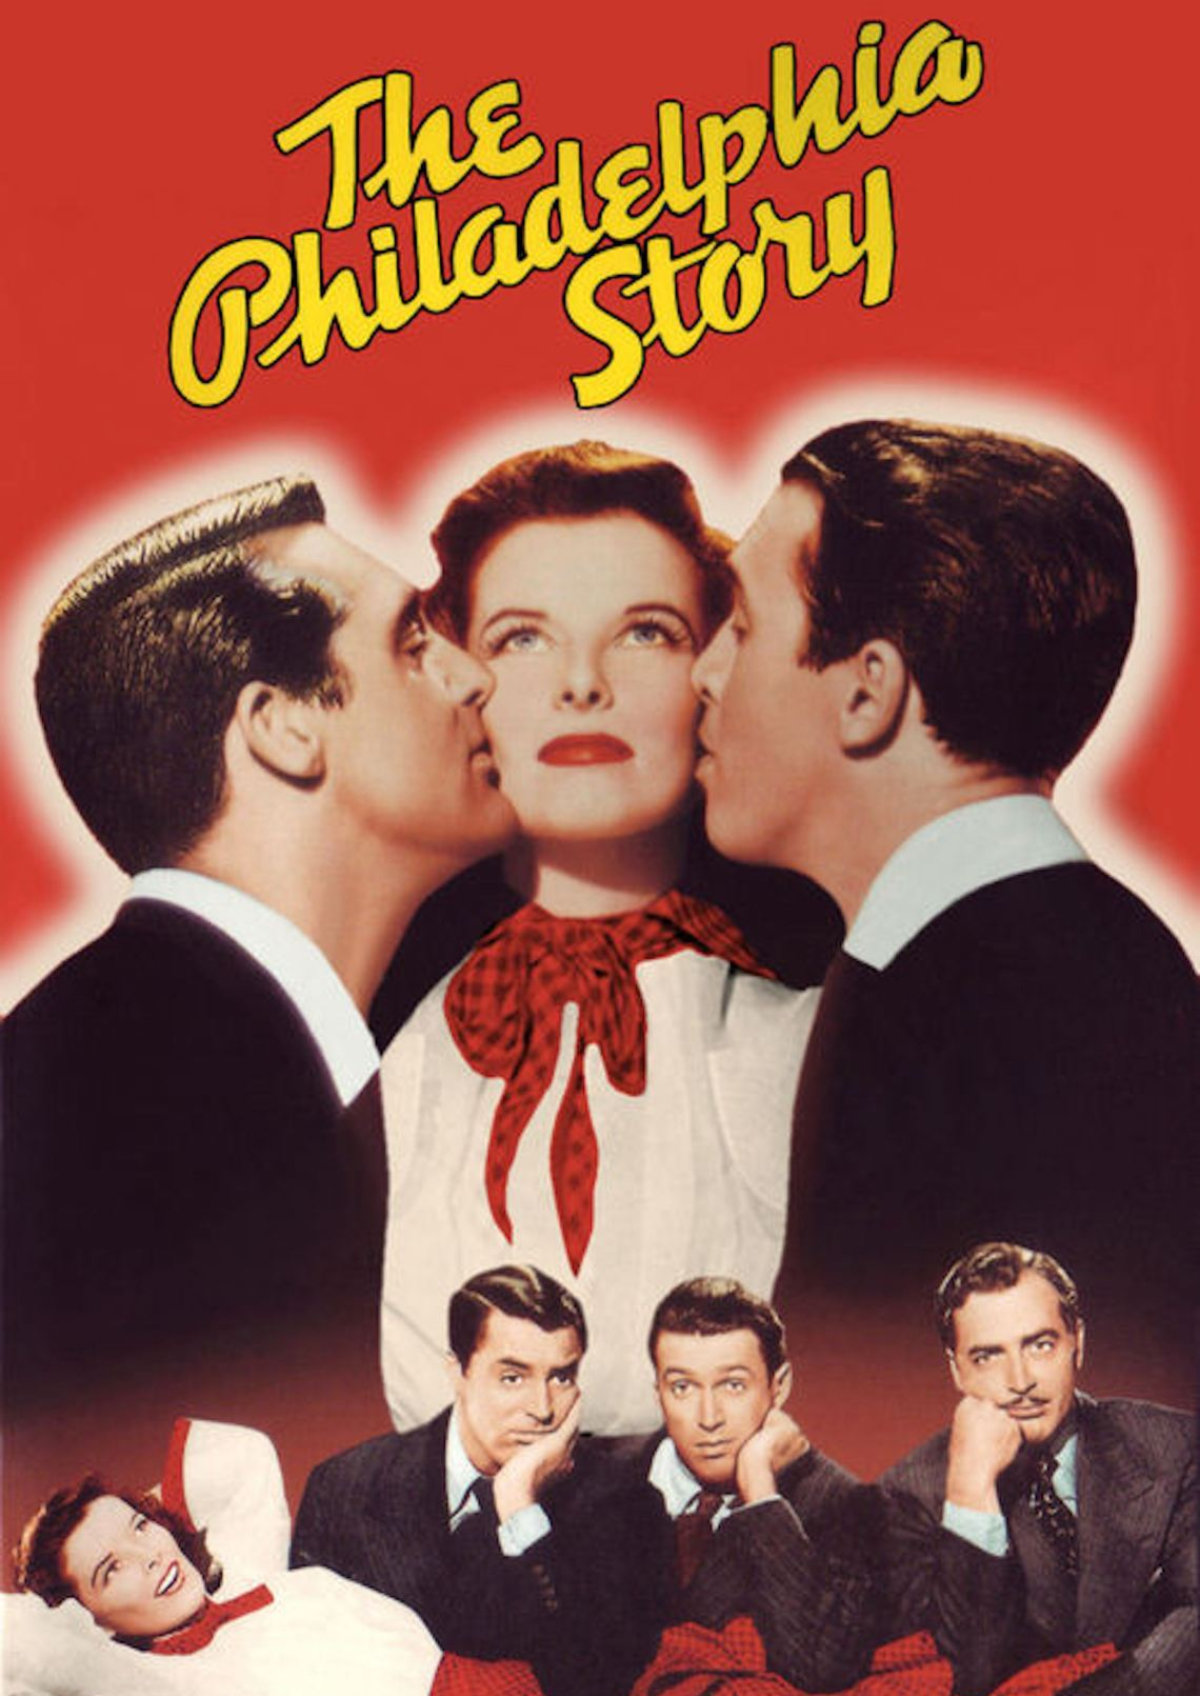 'The Philadelphia Story' movie poster